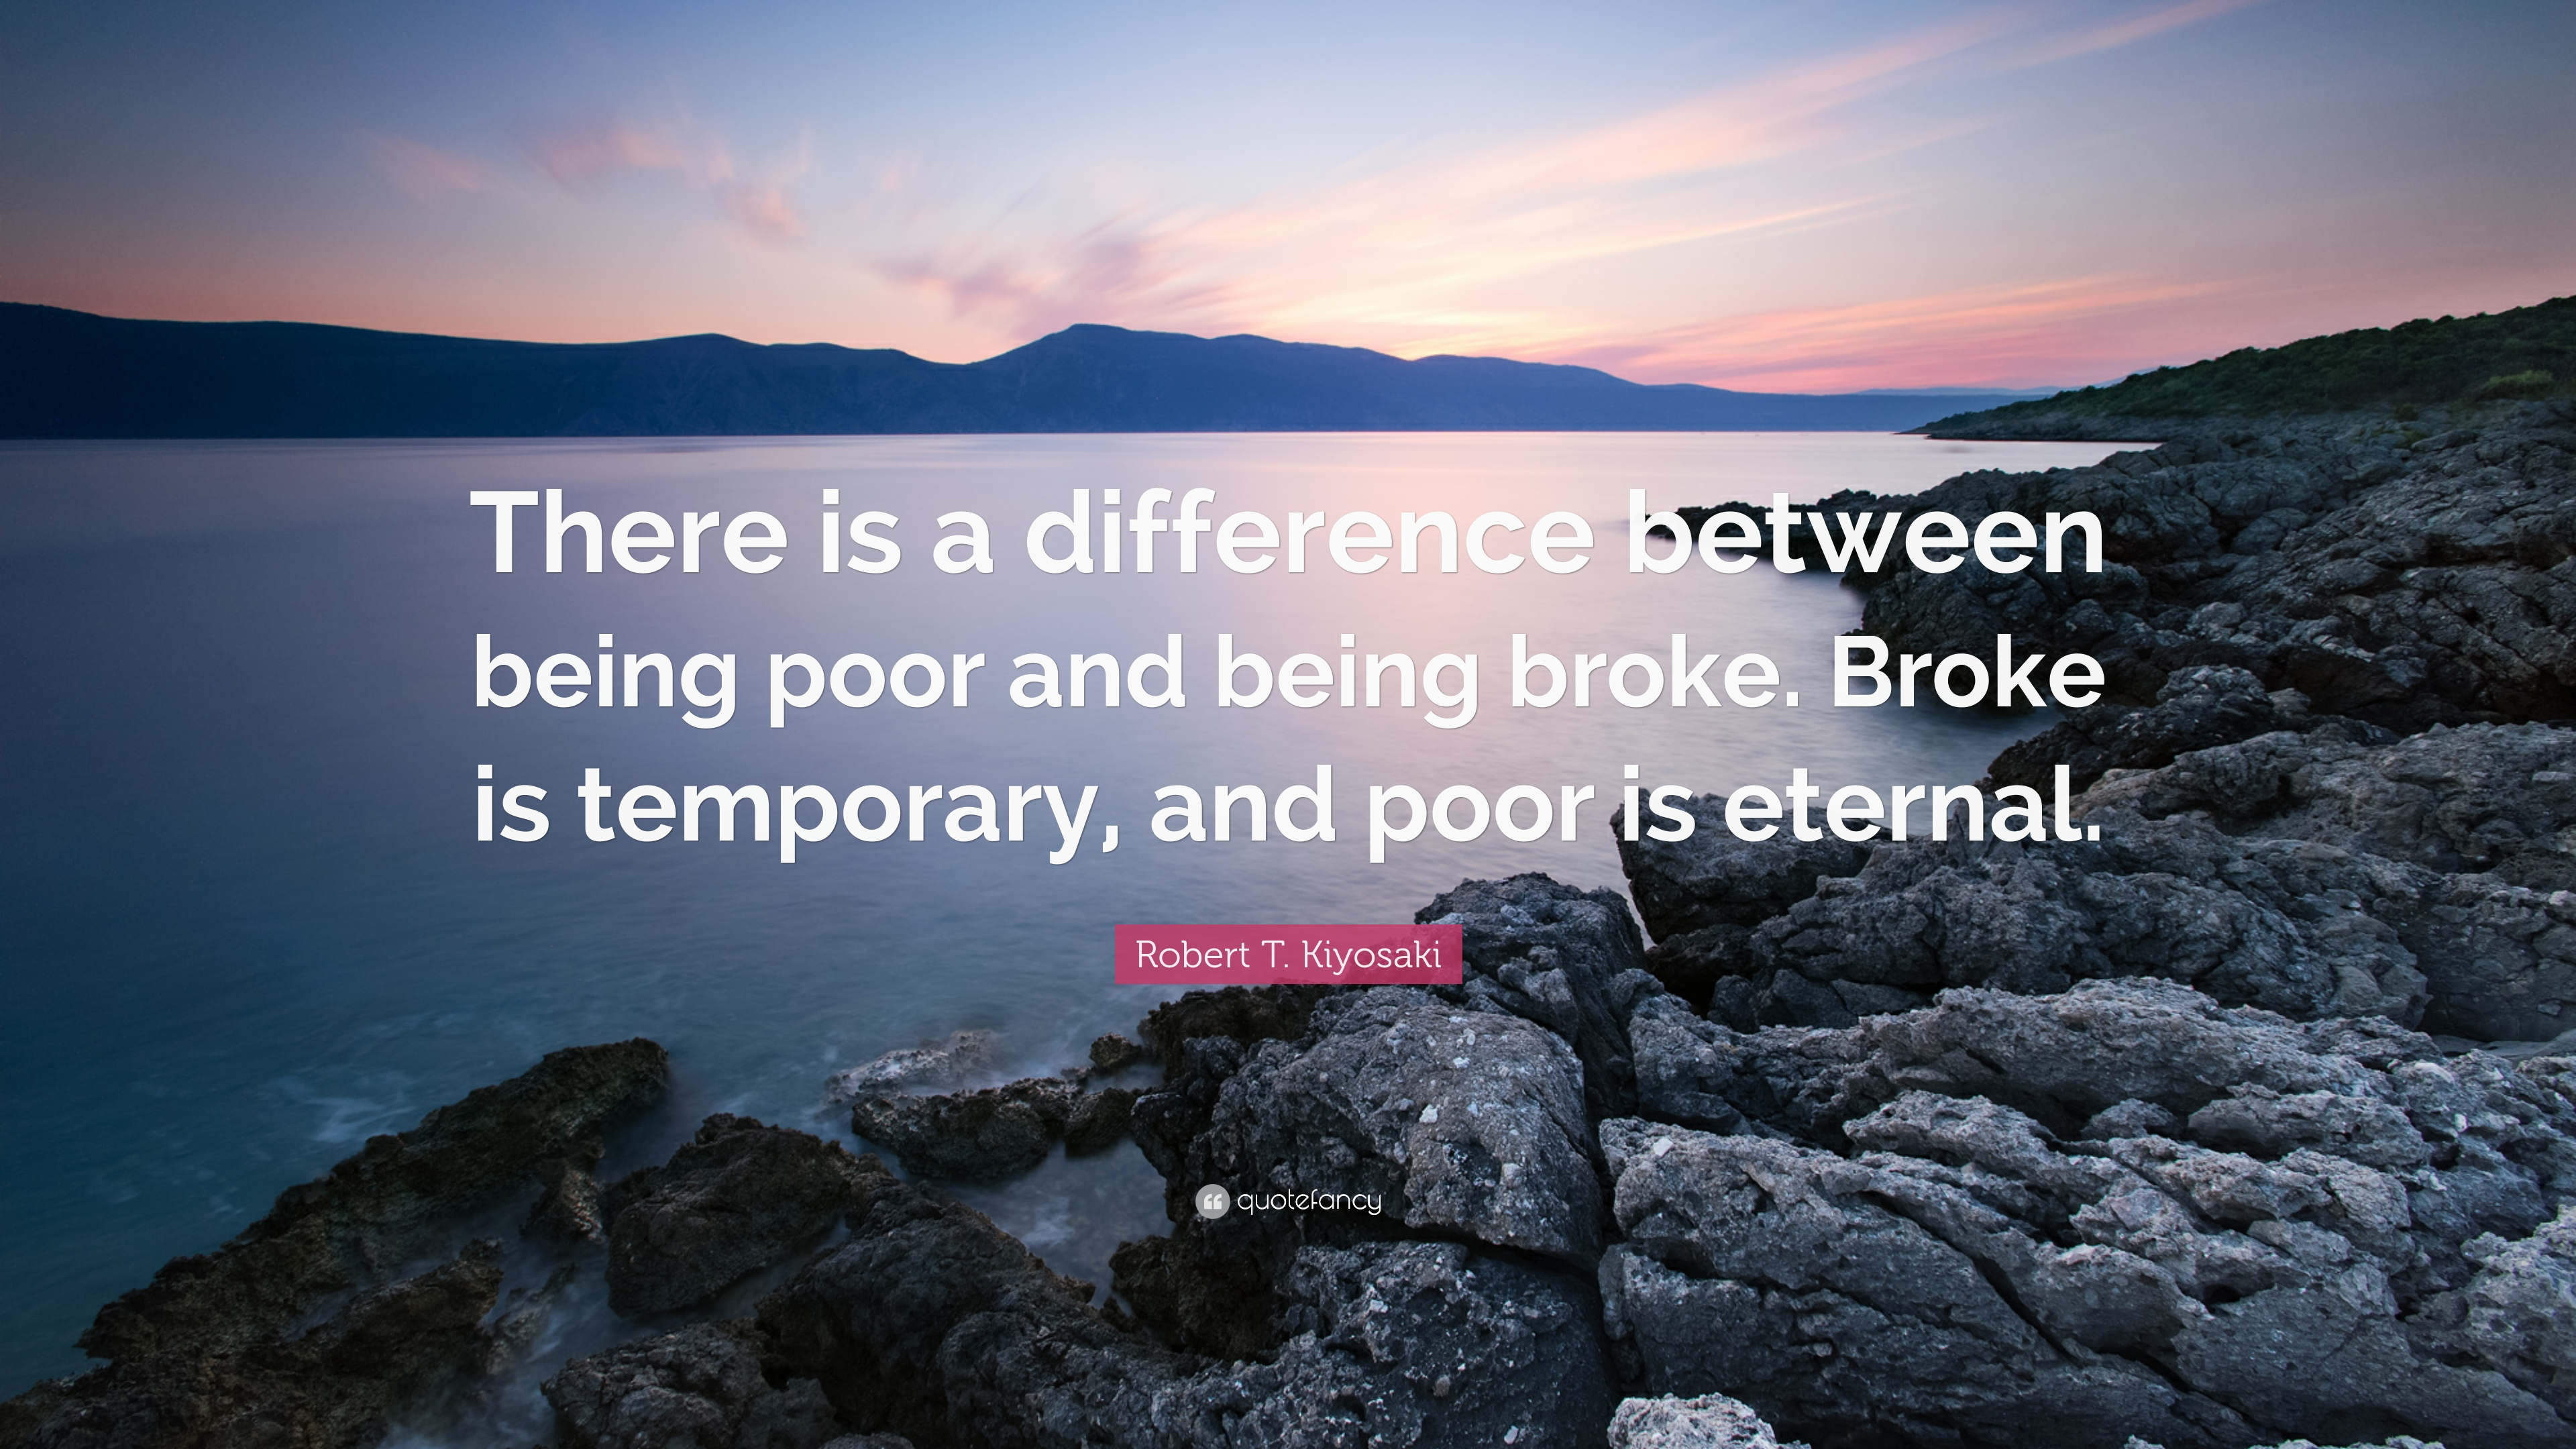 Robert T Kiyosaki Quote There Is A Difference Between Being Poor